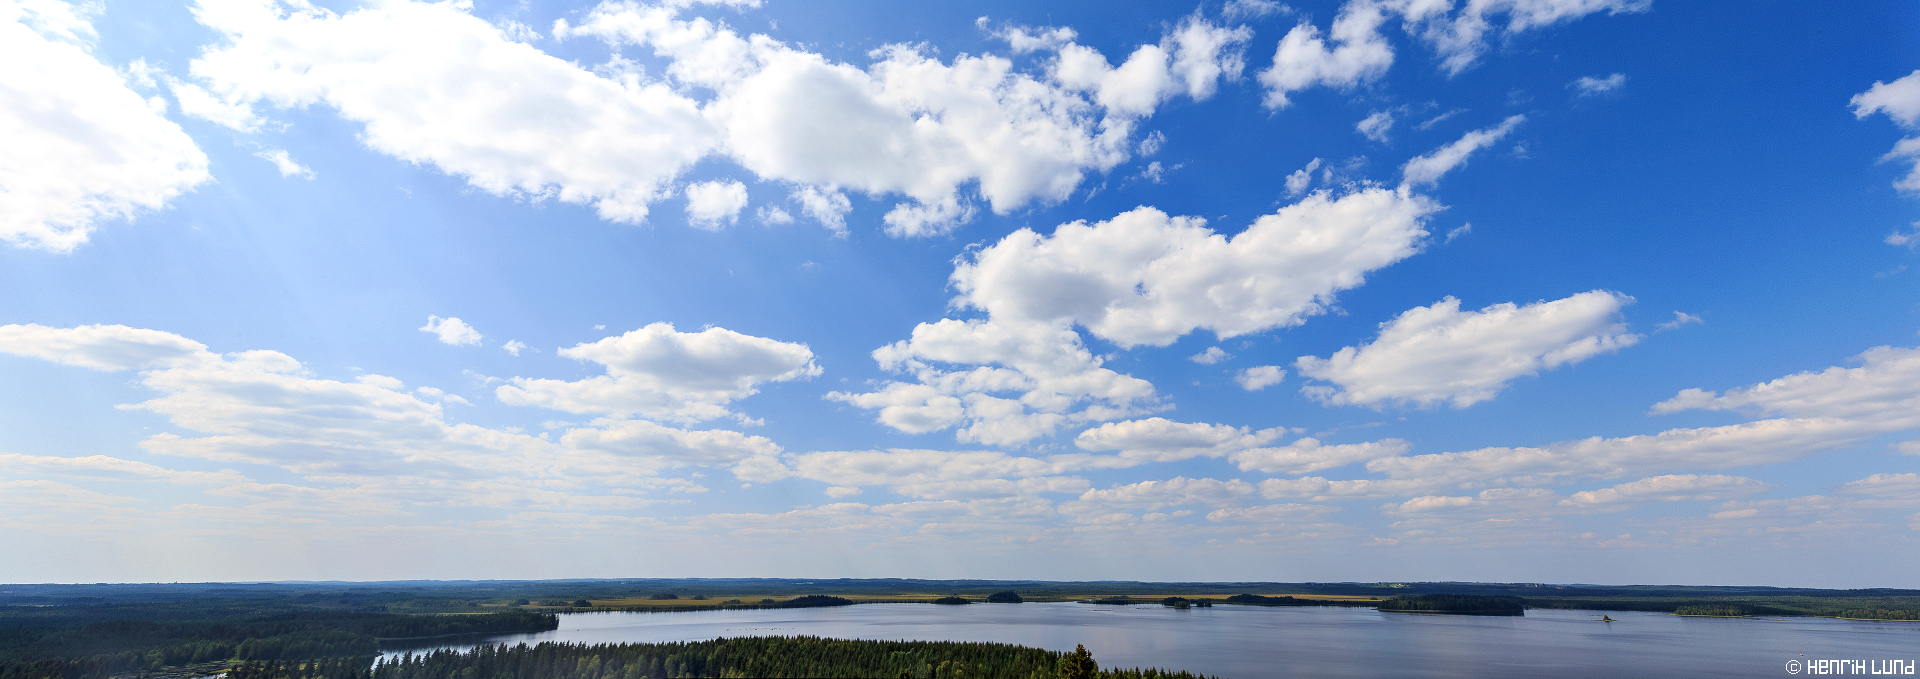 Panorama view looking northwest from water tower in Ilomantsi, Northern-Carelia region, Finland. August 2014.